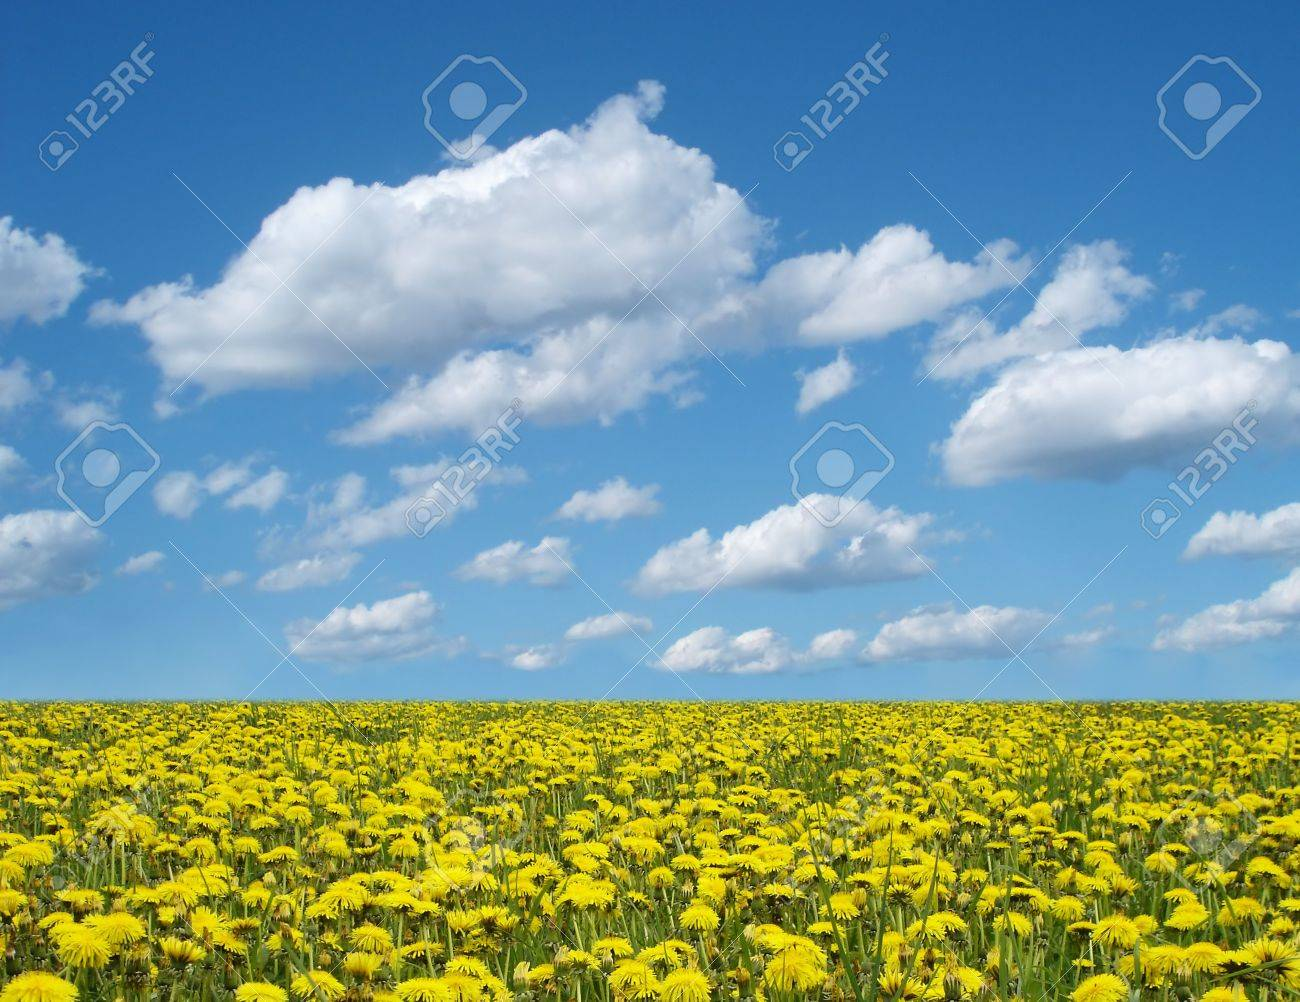 dandelion field and blue cloudy sky Stock Photo - 361751